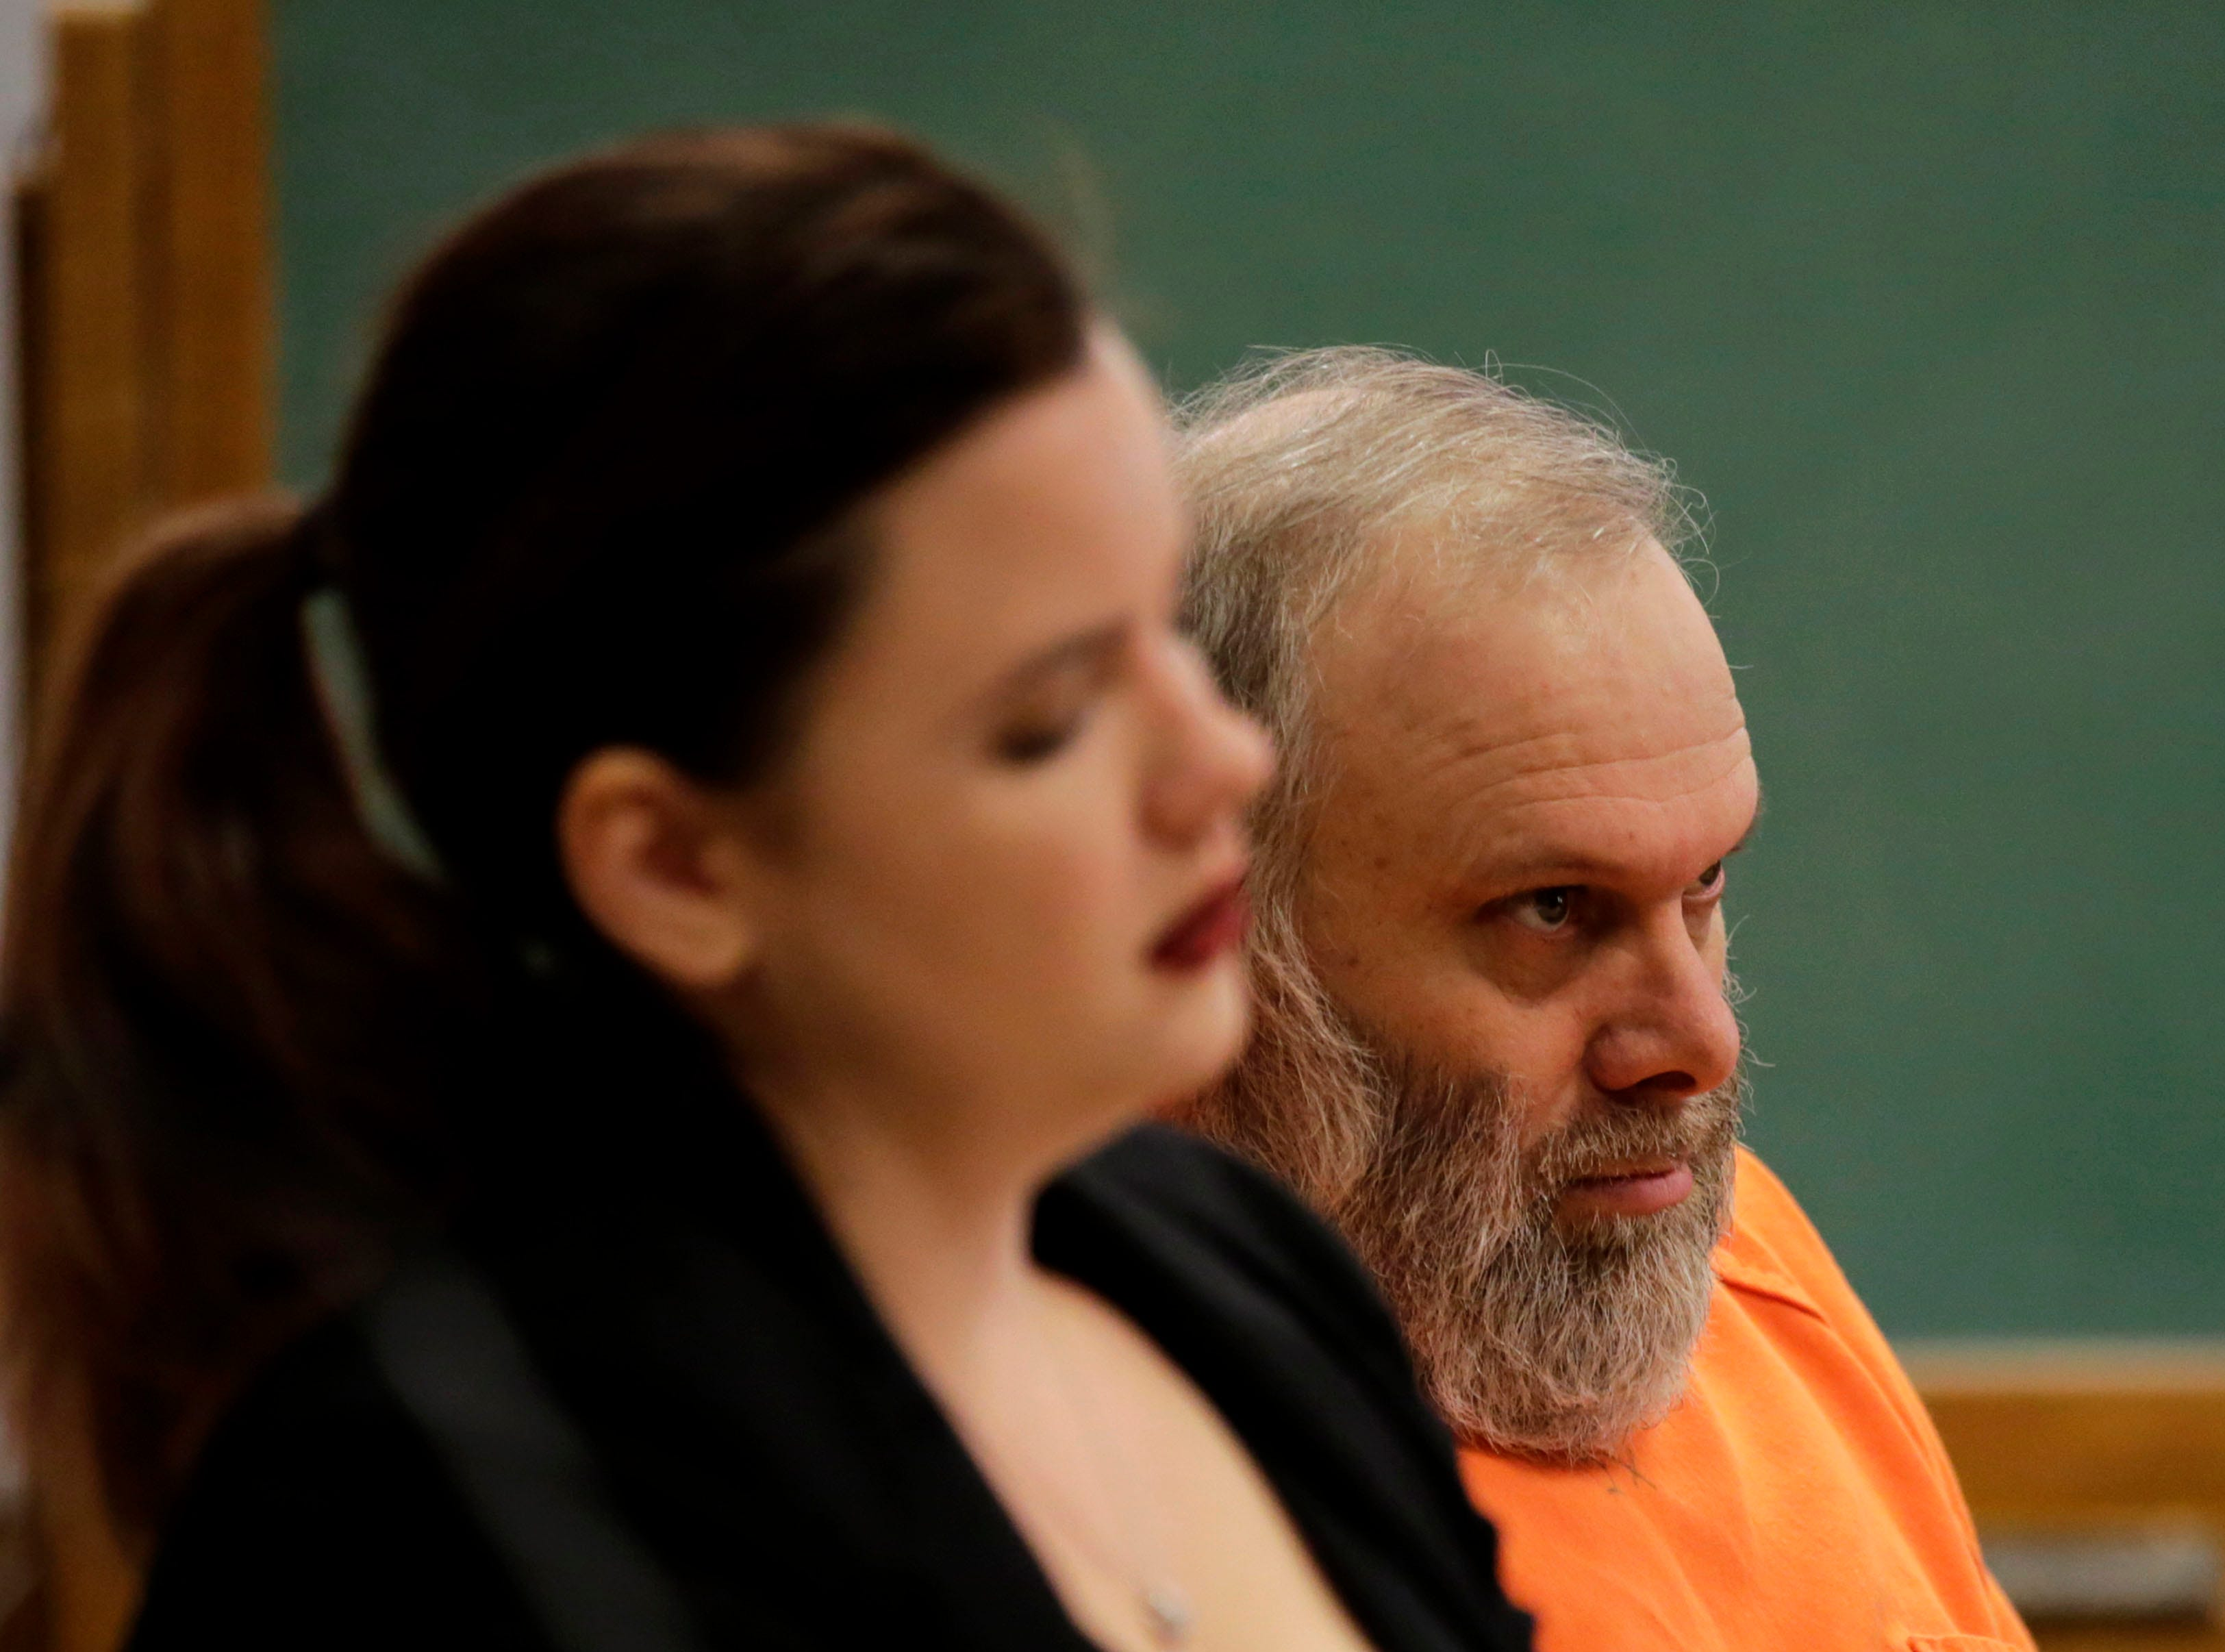 Gary Bohman sits at the defense table during a sentencing hearing on Tuesday, December 18, 2018, at the Wood County courthouse in Wisconsin Rapids, Wis. Bohman was sentenced to life in prison with no possibility of parole for the murder of Christopher Race.Tork Mason/USA TODAY NETWORK-Wisconsin